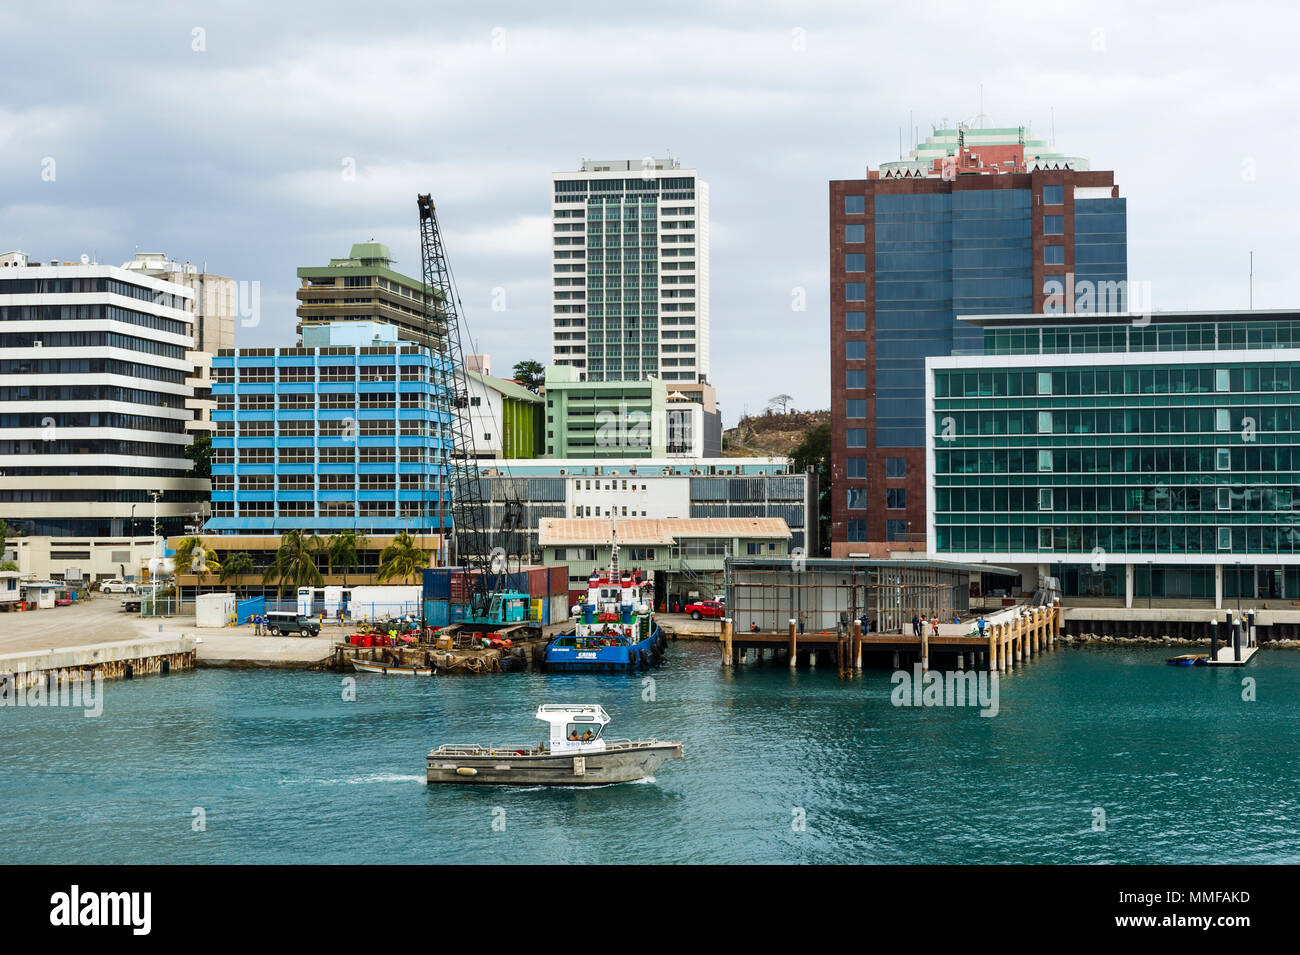 A fishing boat in the harbor beneath the central business district of Port Moresby. - Stock Image